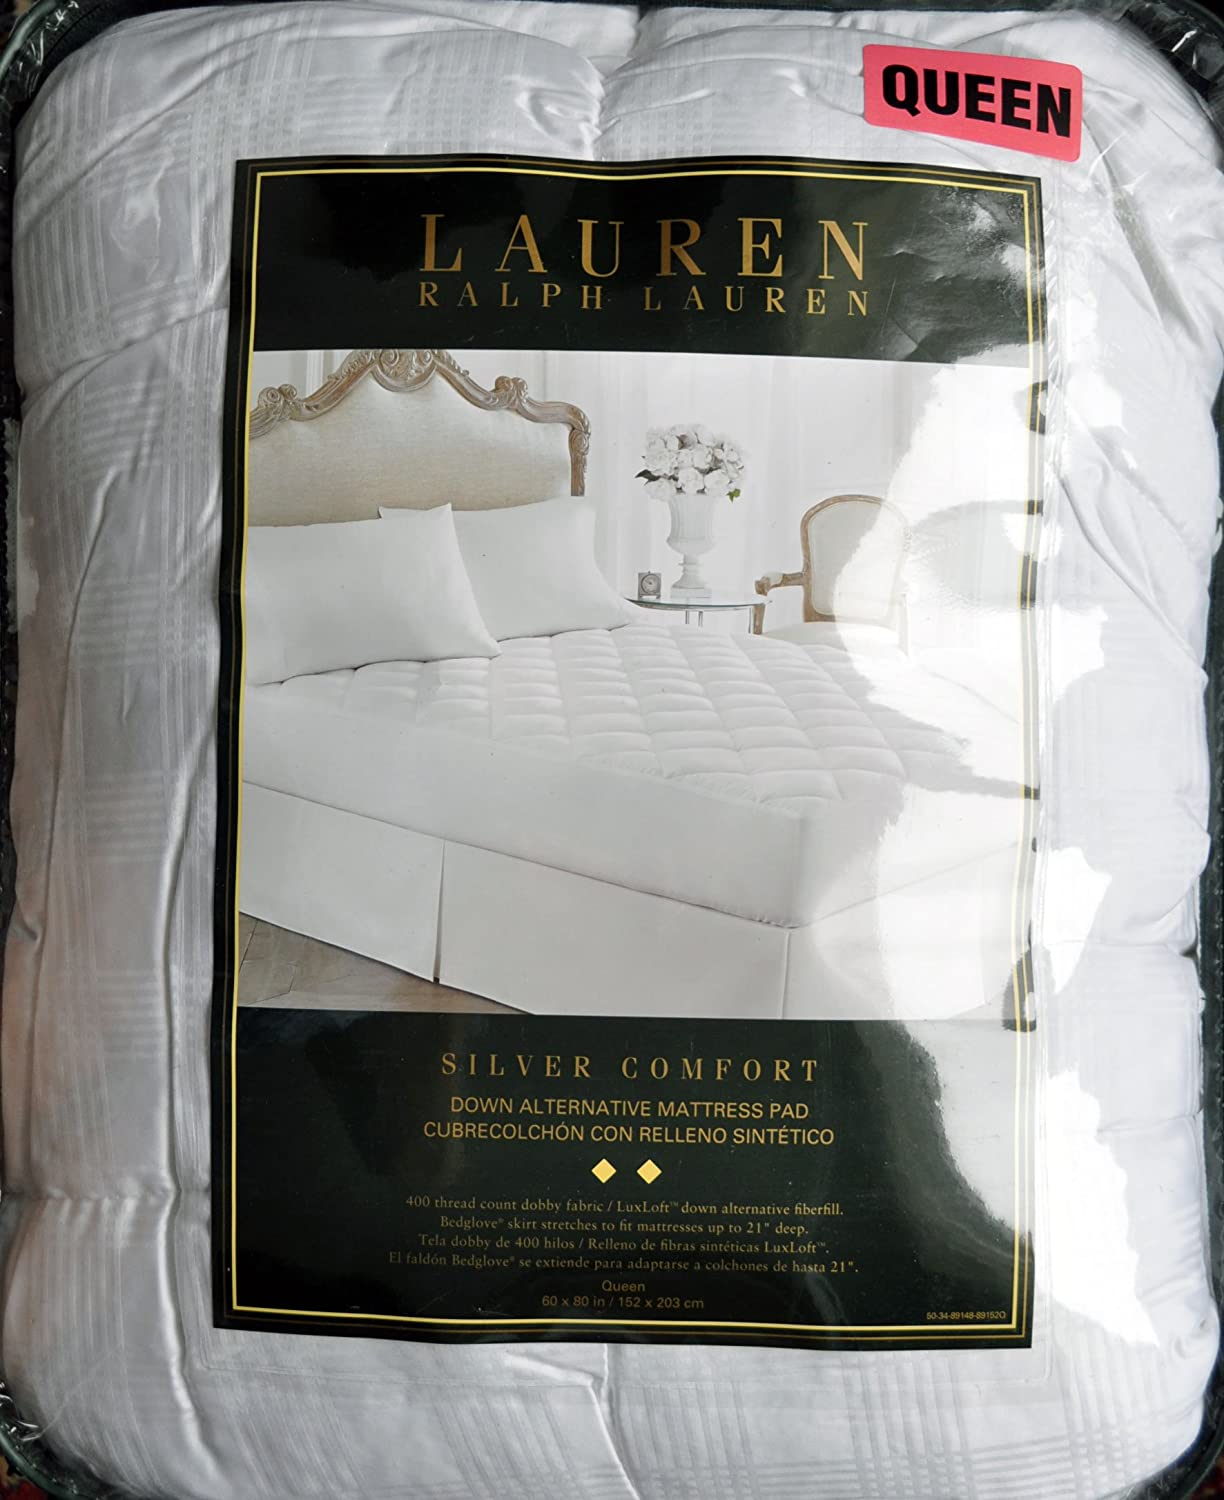 Amazon.com: Lauren Ralph Lauren Silver LuxLoft Comfort Down Alternative Mattress Pad Queen: Home & Kitchen